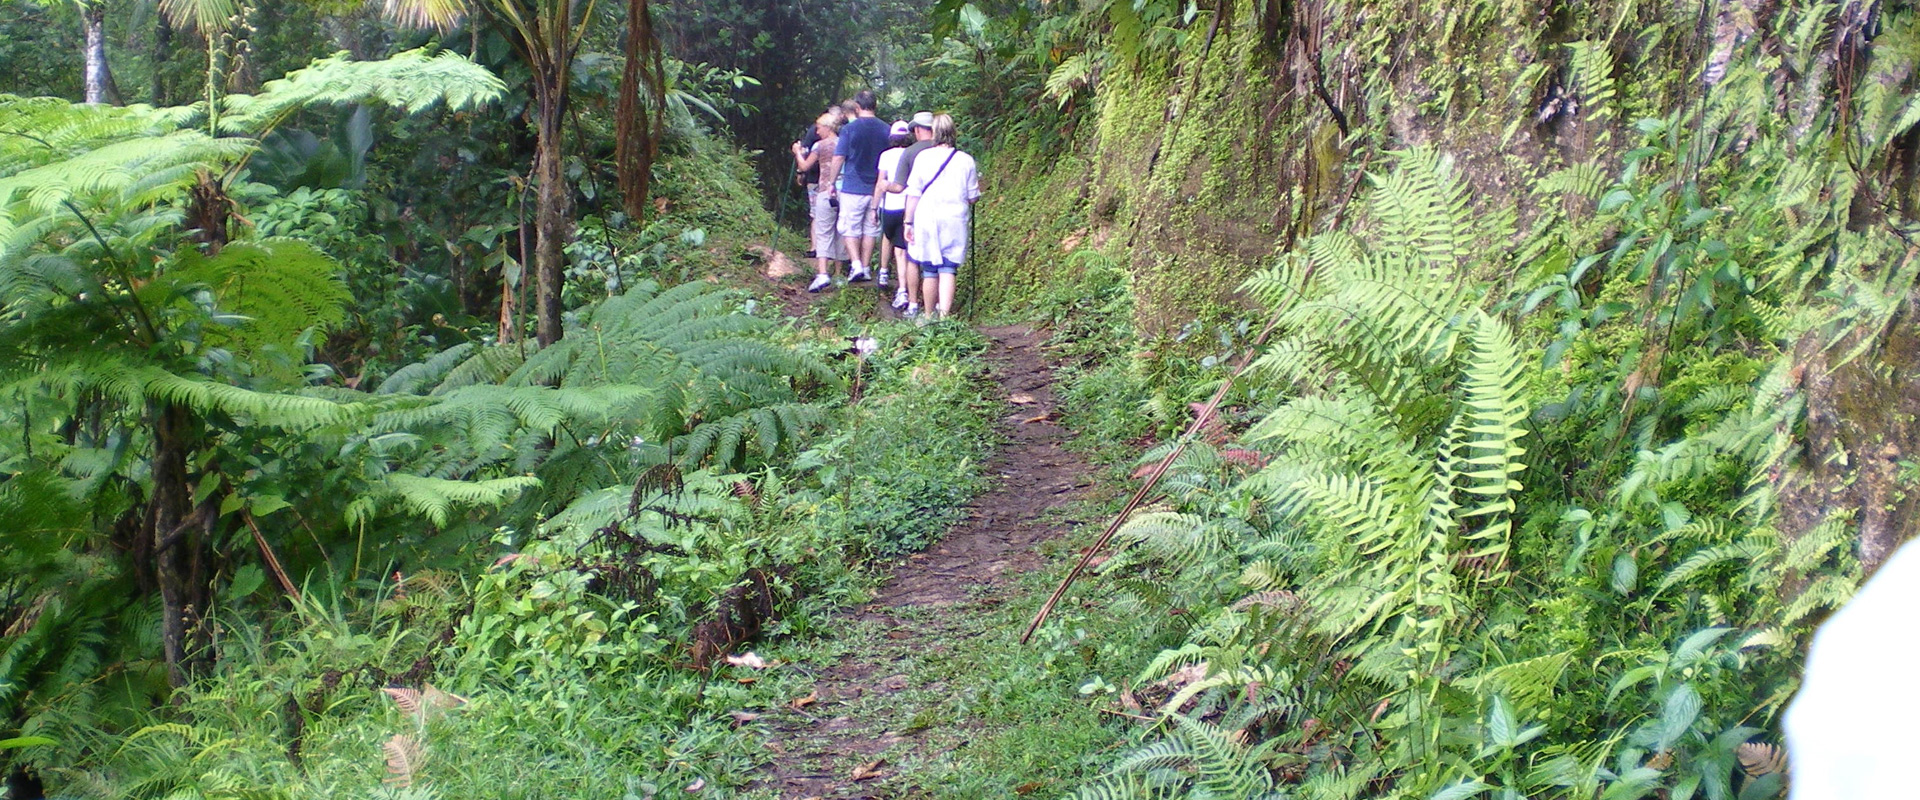 Group on Nature Hike Tour in St. Kitts and Nevis